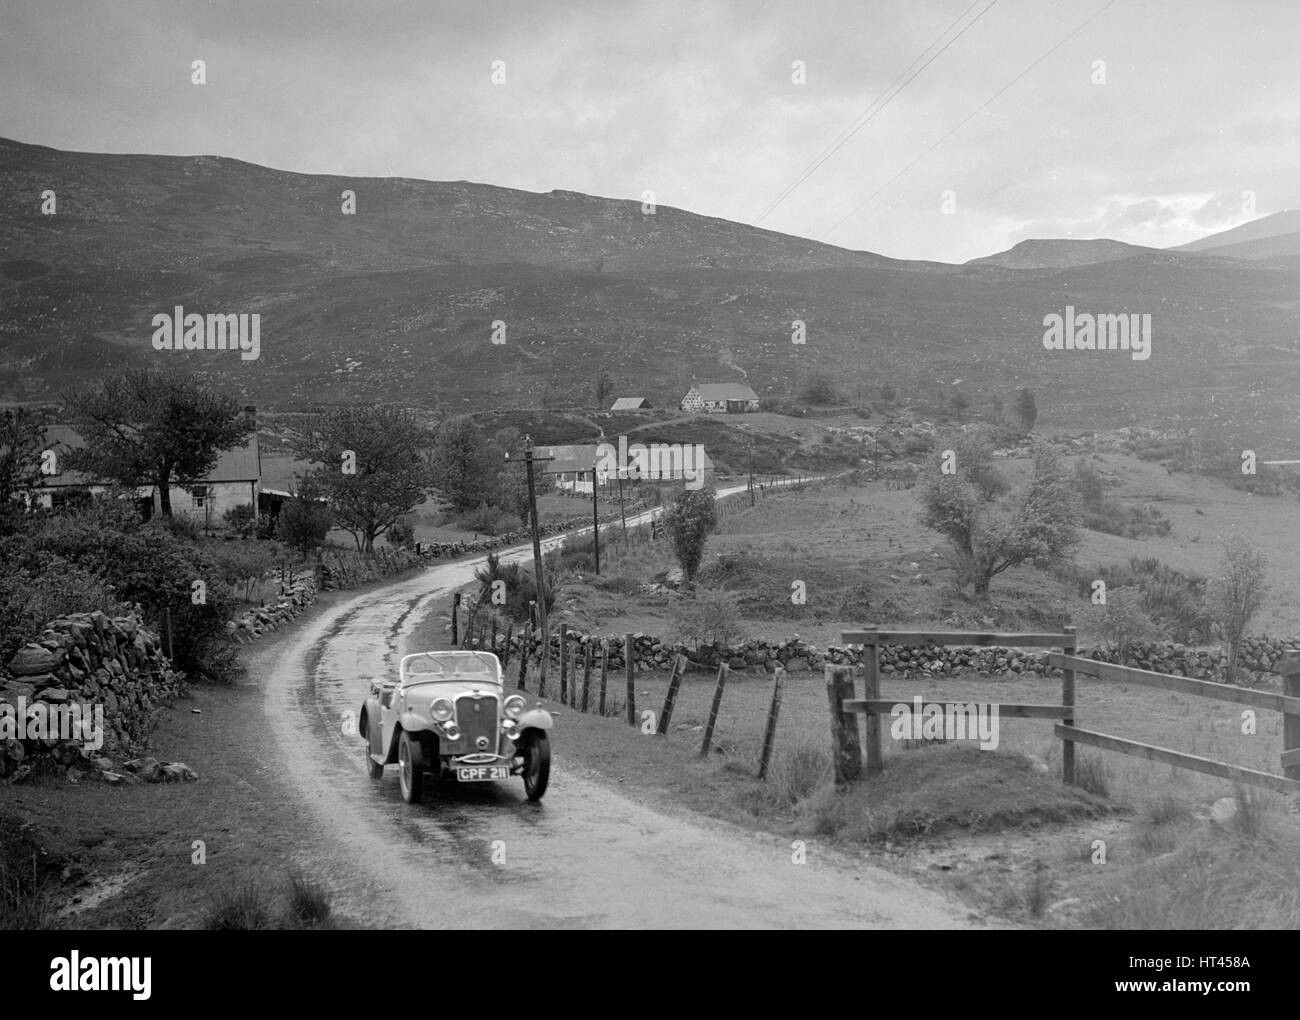 Singer Nine Sports of Miss MC Sherer competing in the RSAC Scottish Rally, 1936. Artist: Bill Brunell. - Stock Image